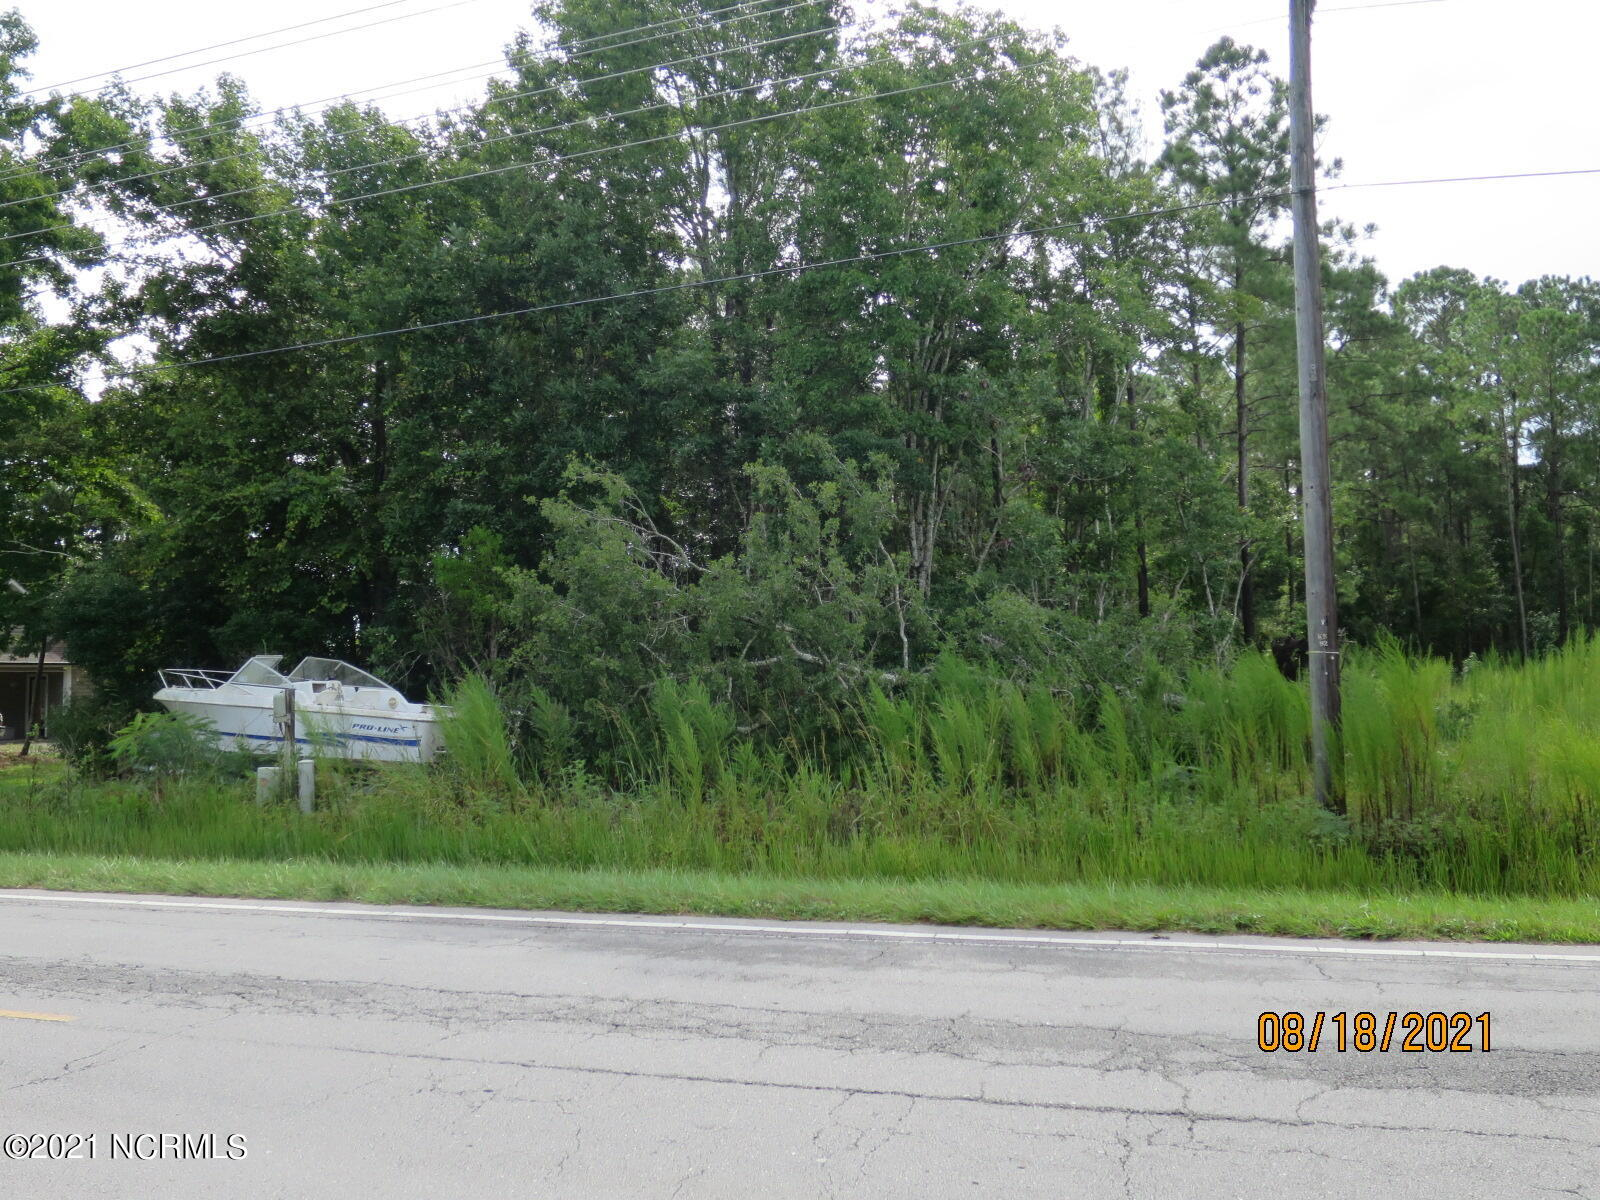 Don't miss out on this residential building lot in Sneads Ferry.  This lot has a 3 bedroom septic installed (installed in 1997, never used, buyer to verify condition) and municipal water available (all fees to be paid by buyer).  Close to area beaches on Topsail Island.  This location is also convenient to shopping, dining, and area military bases.  No HOA - room for your boat - unlike those tiny lots in most subdivisions.  Bring your house plans and builder and get started on making your coastal lifestyle dreams come true.